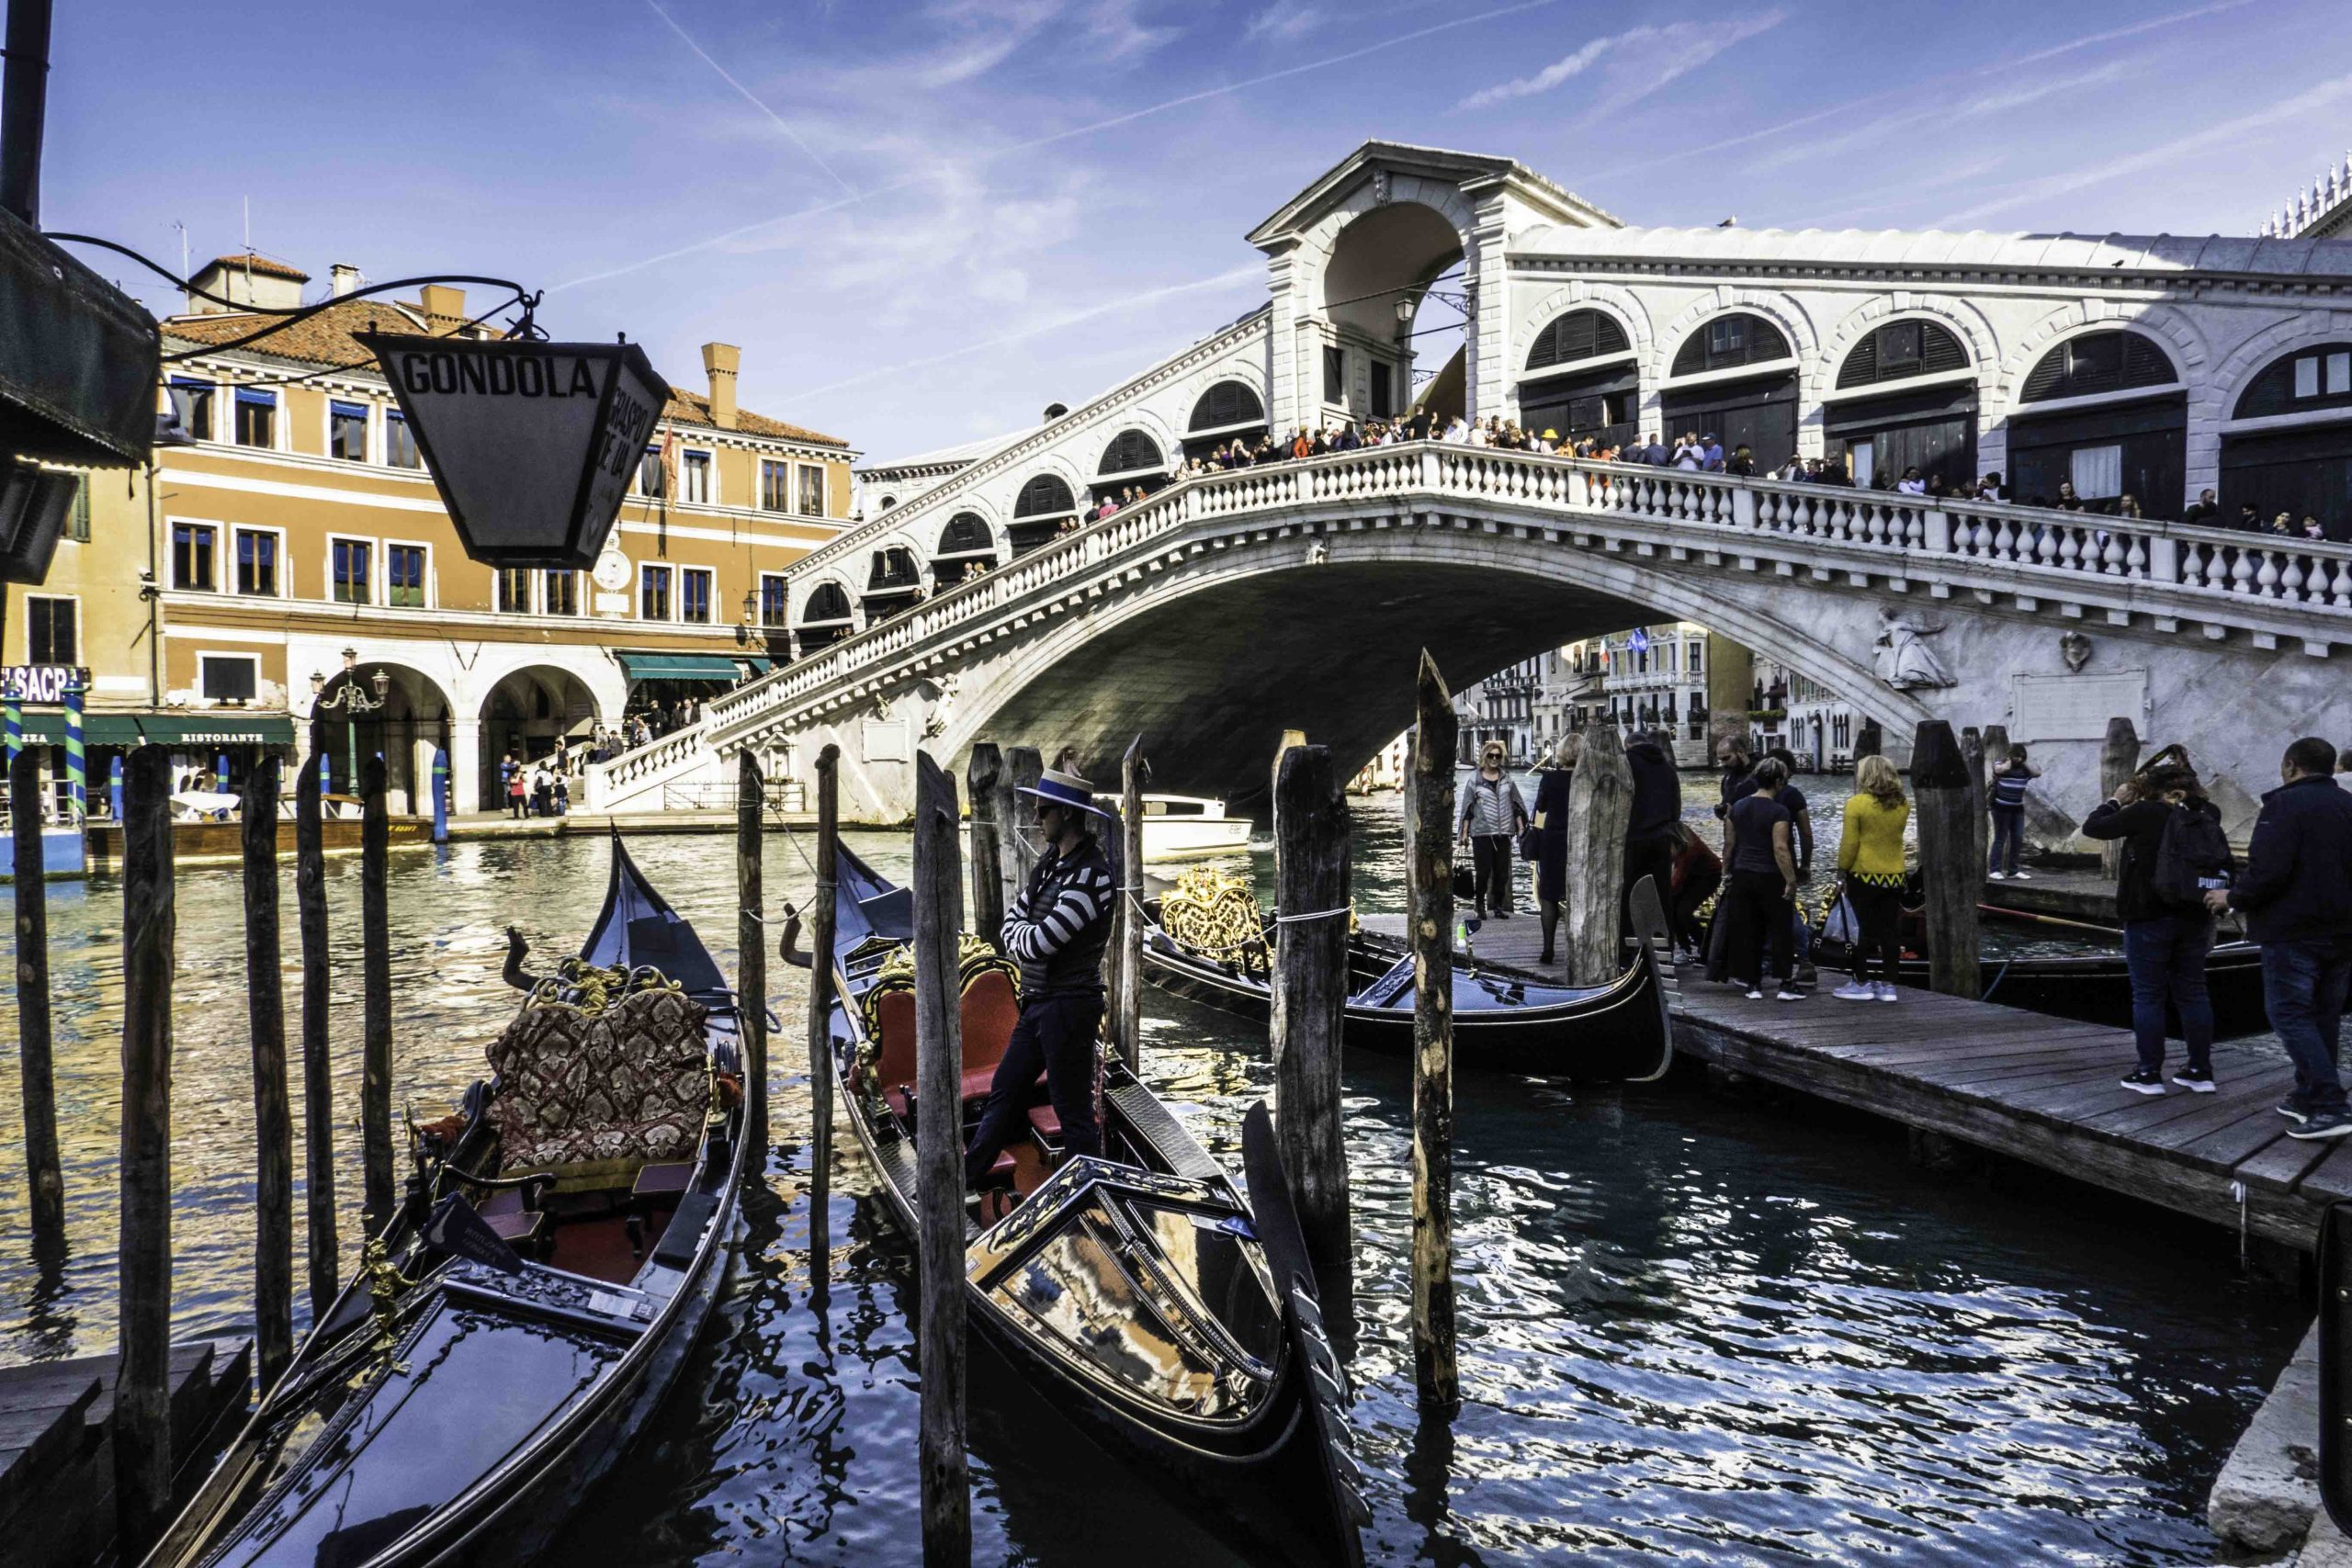 Rialto Bridge, The Grand Canal, Venice, Italy